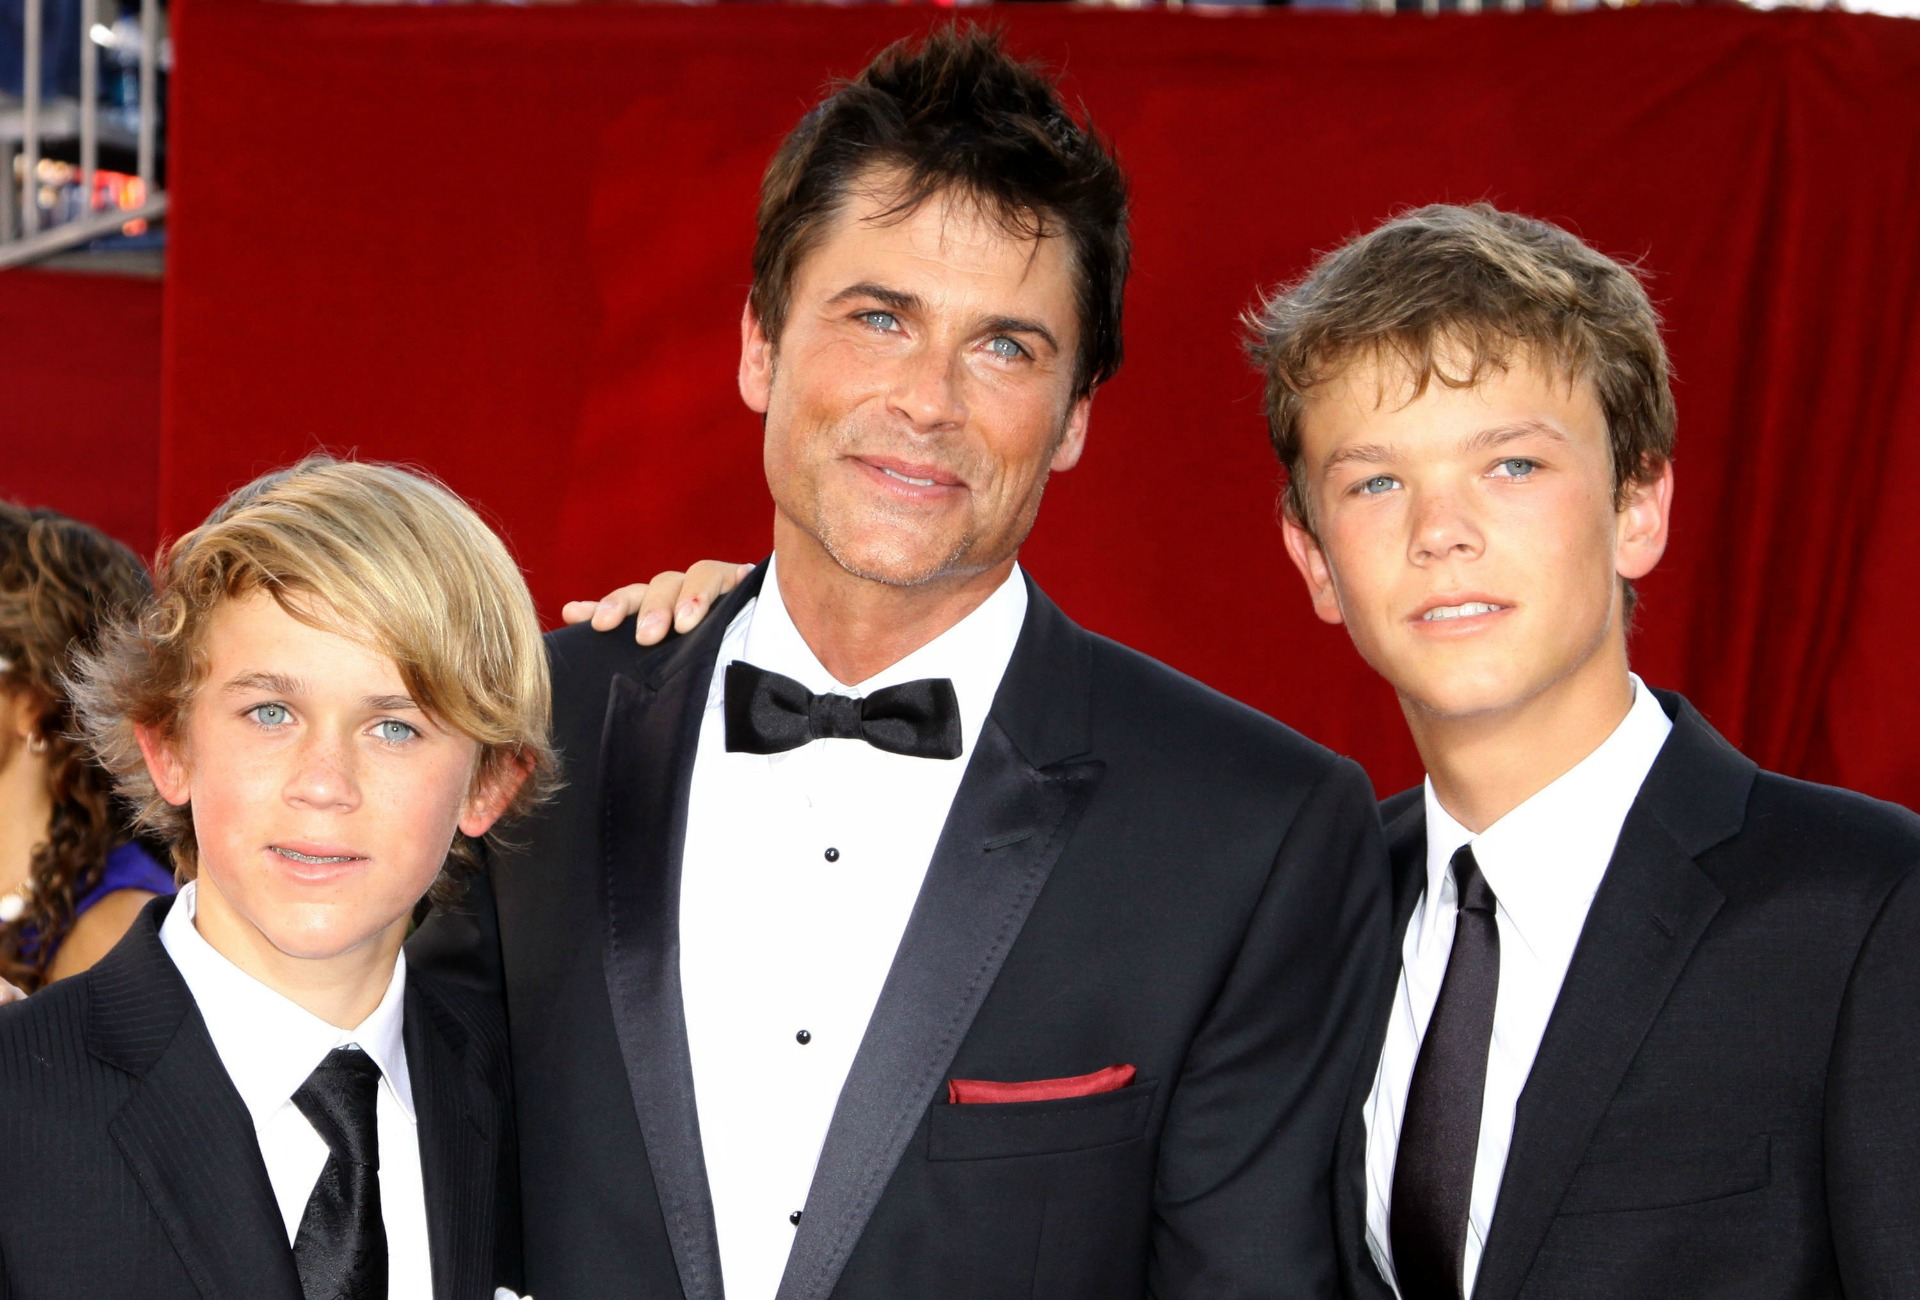 Rob Lowe was a big ol' crybaby when his son left the nest